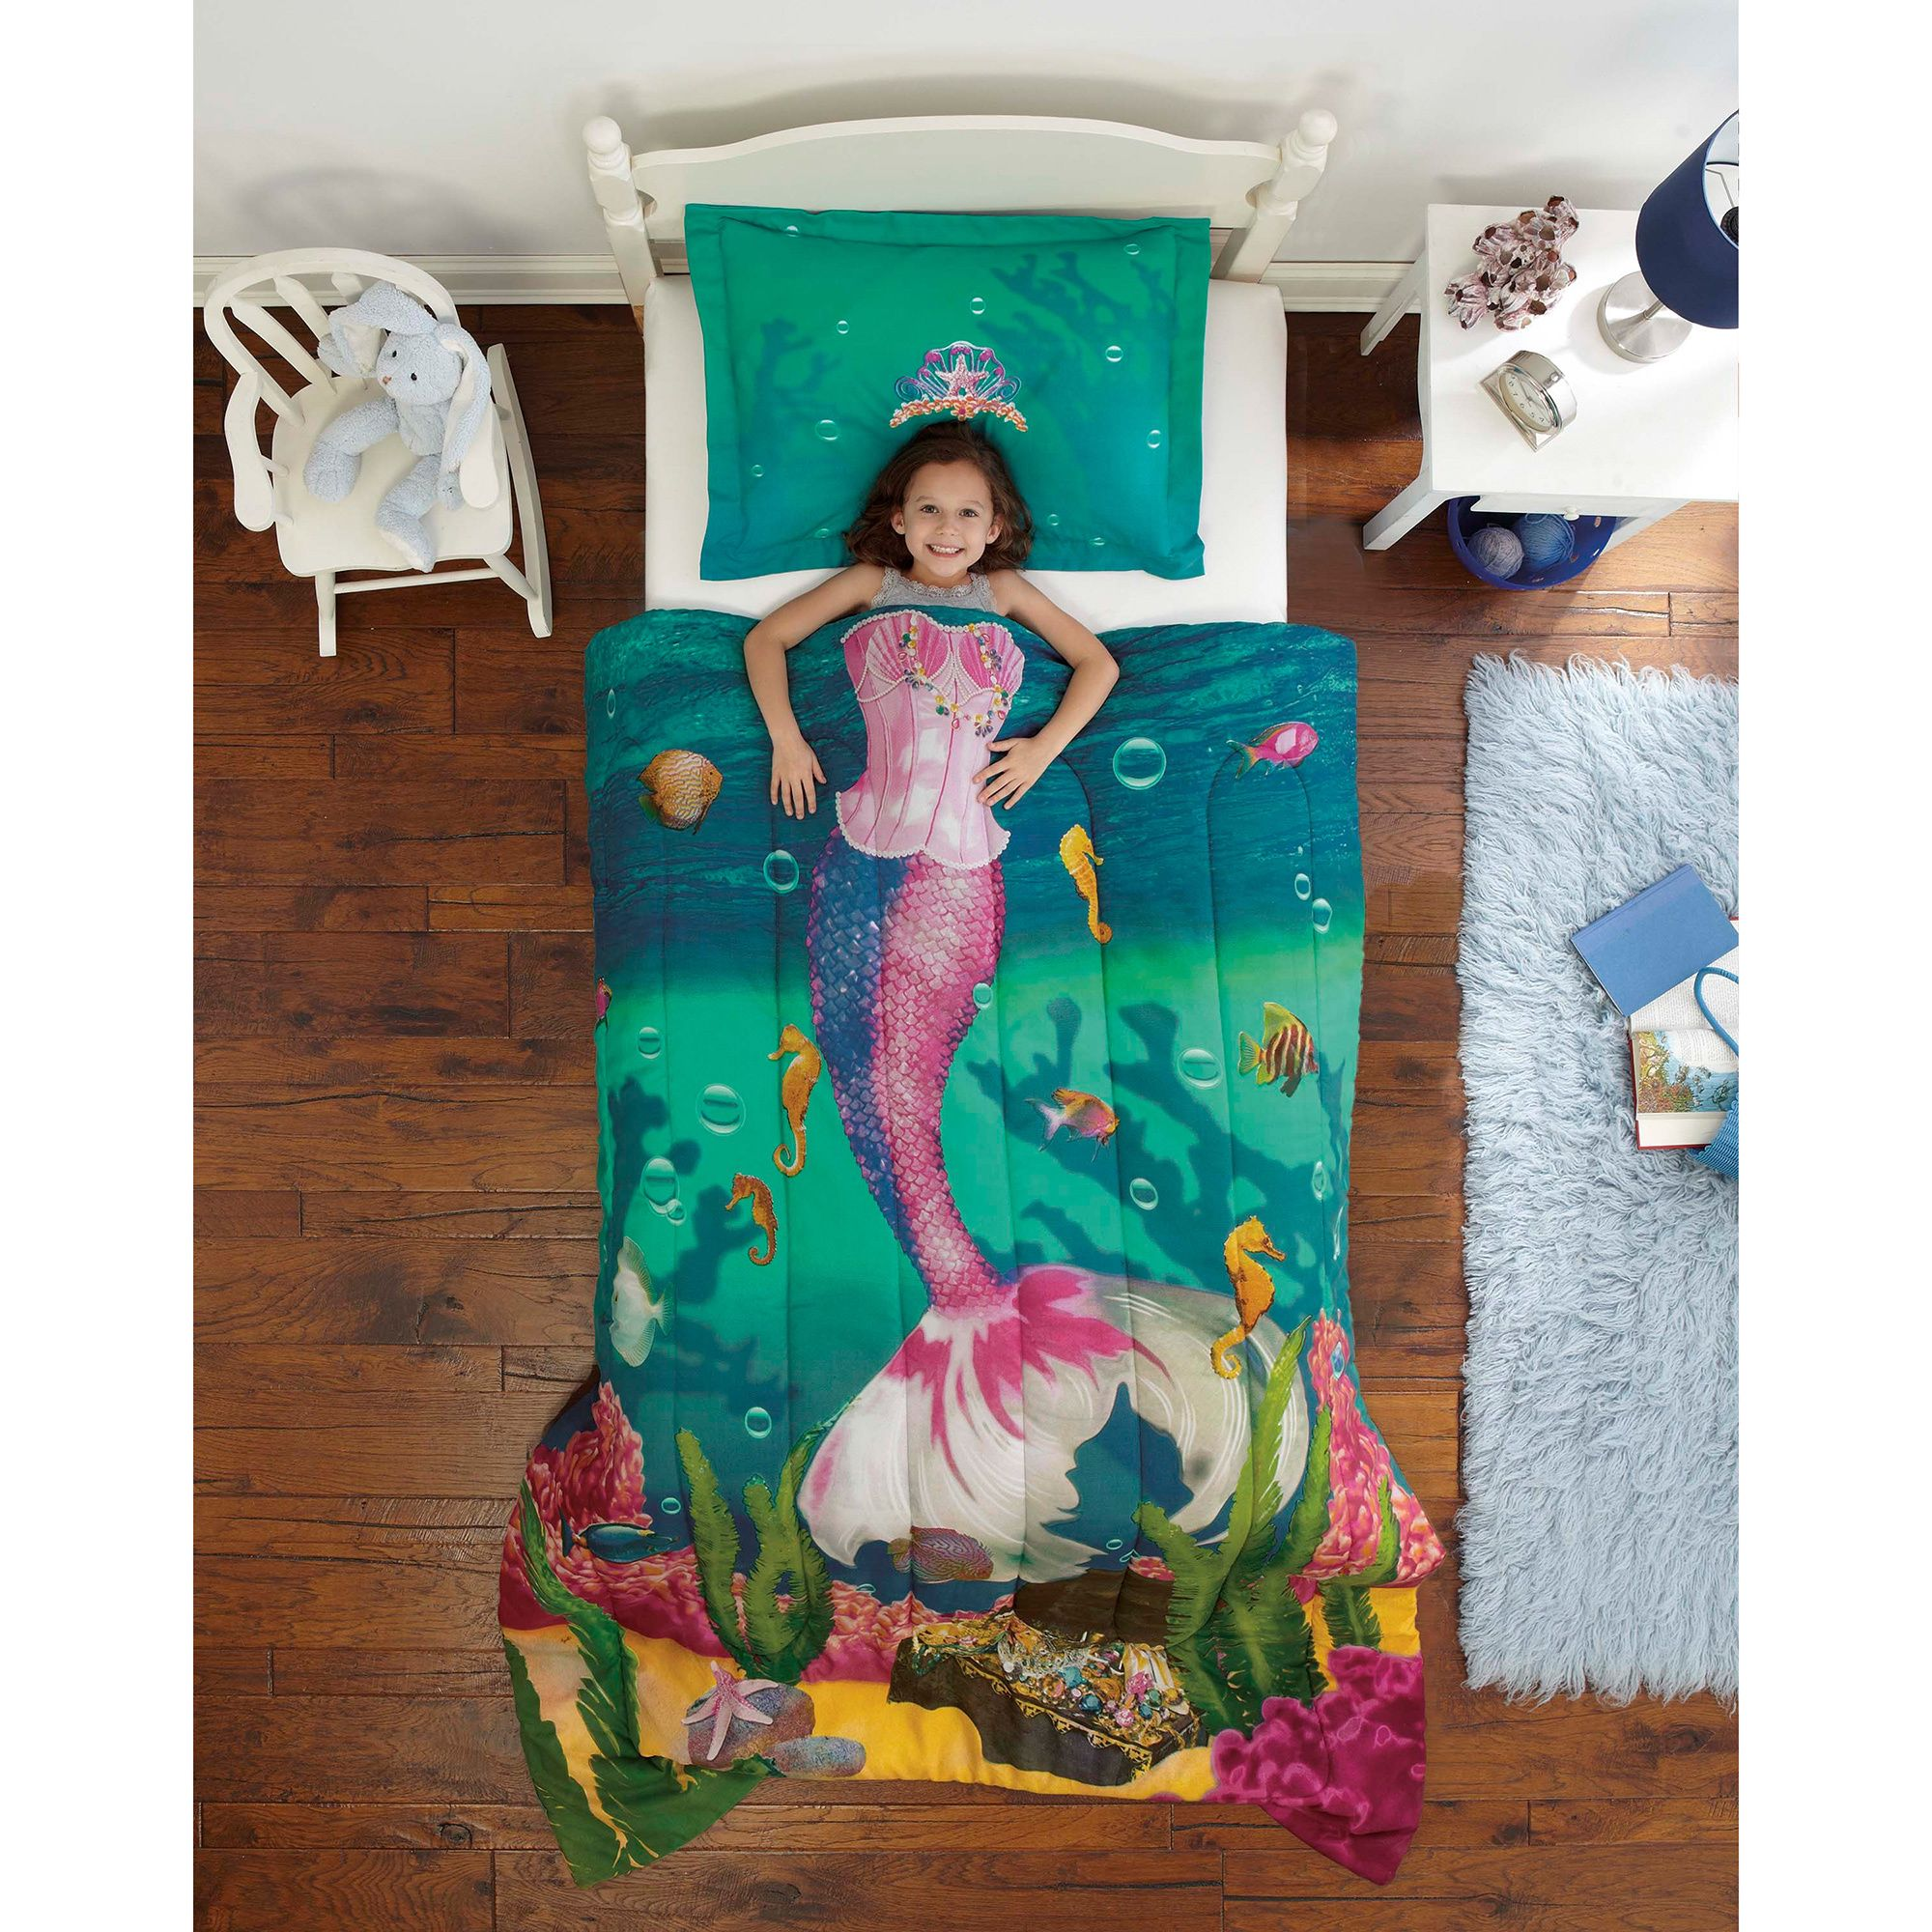 49 Beautiful Beach And Sea Themed Bedroom Designs: Turn Your Little One's Bedroom Into An Underwater Paradise